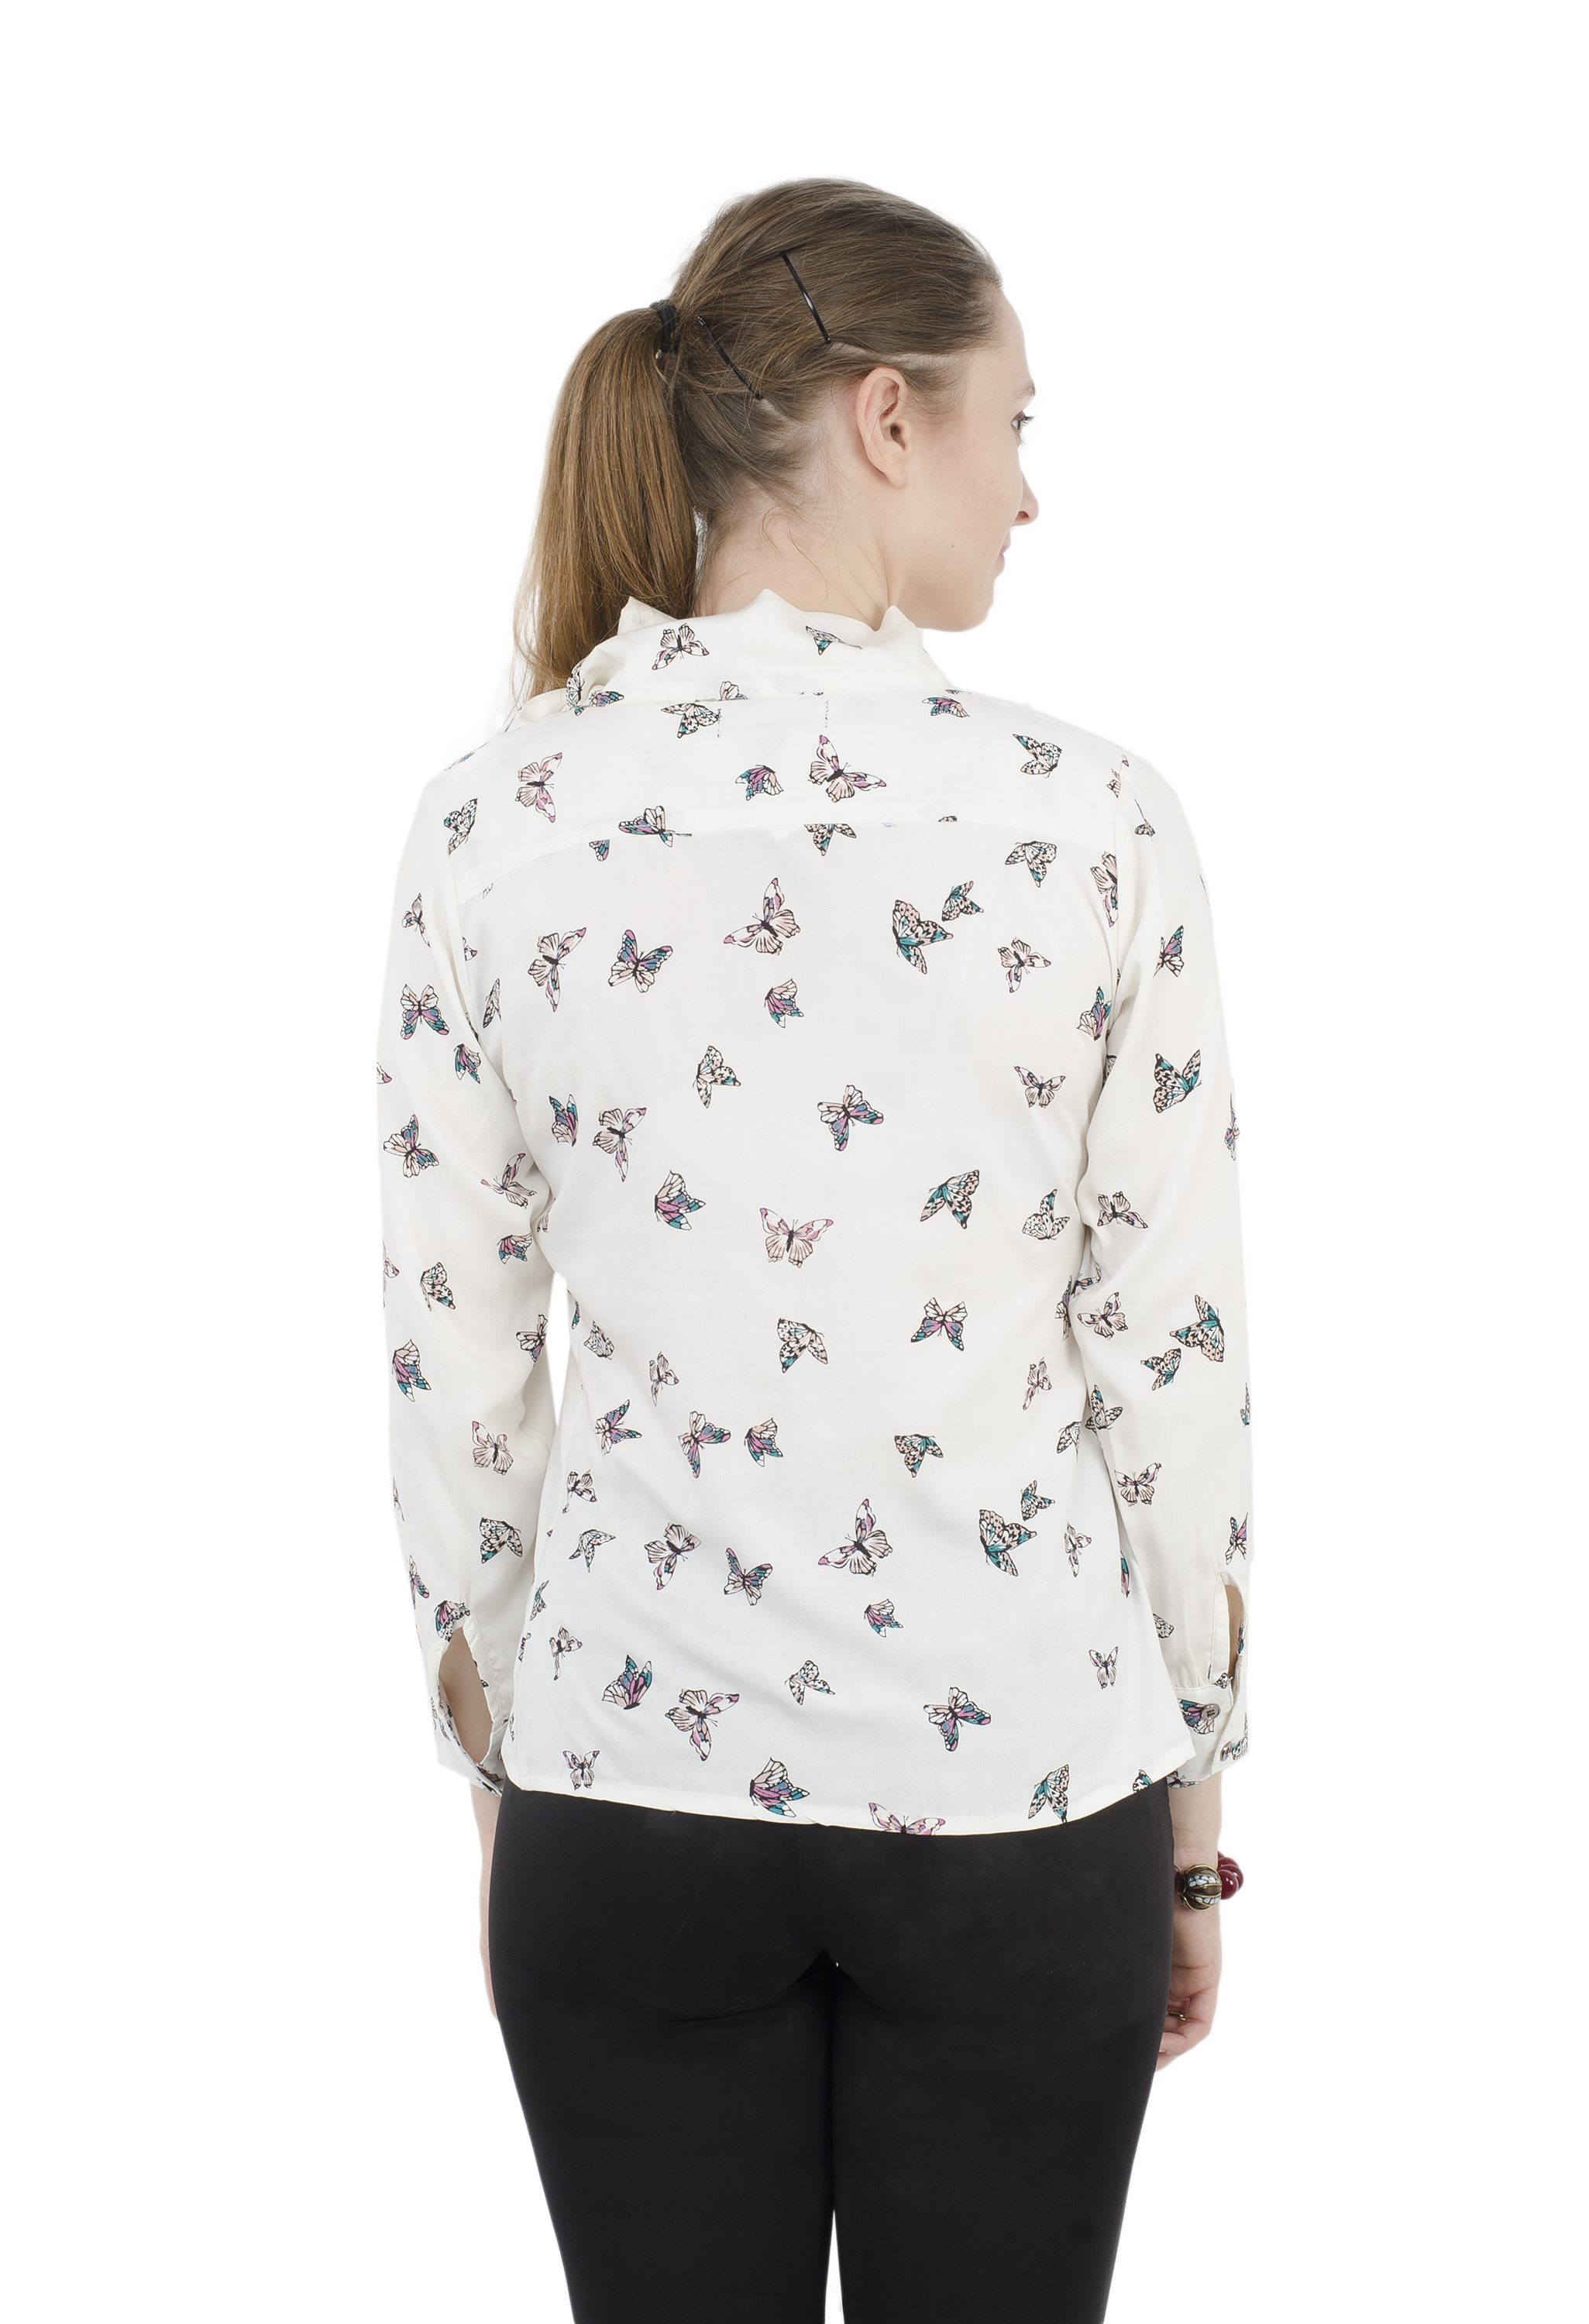 cabc0cce9dc0 The butterfly blouse | Grab Your Garb